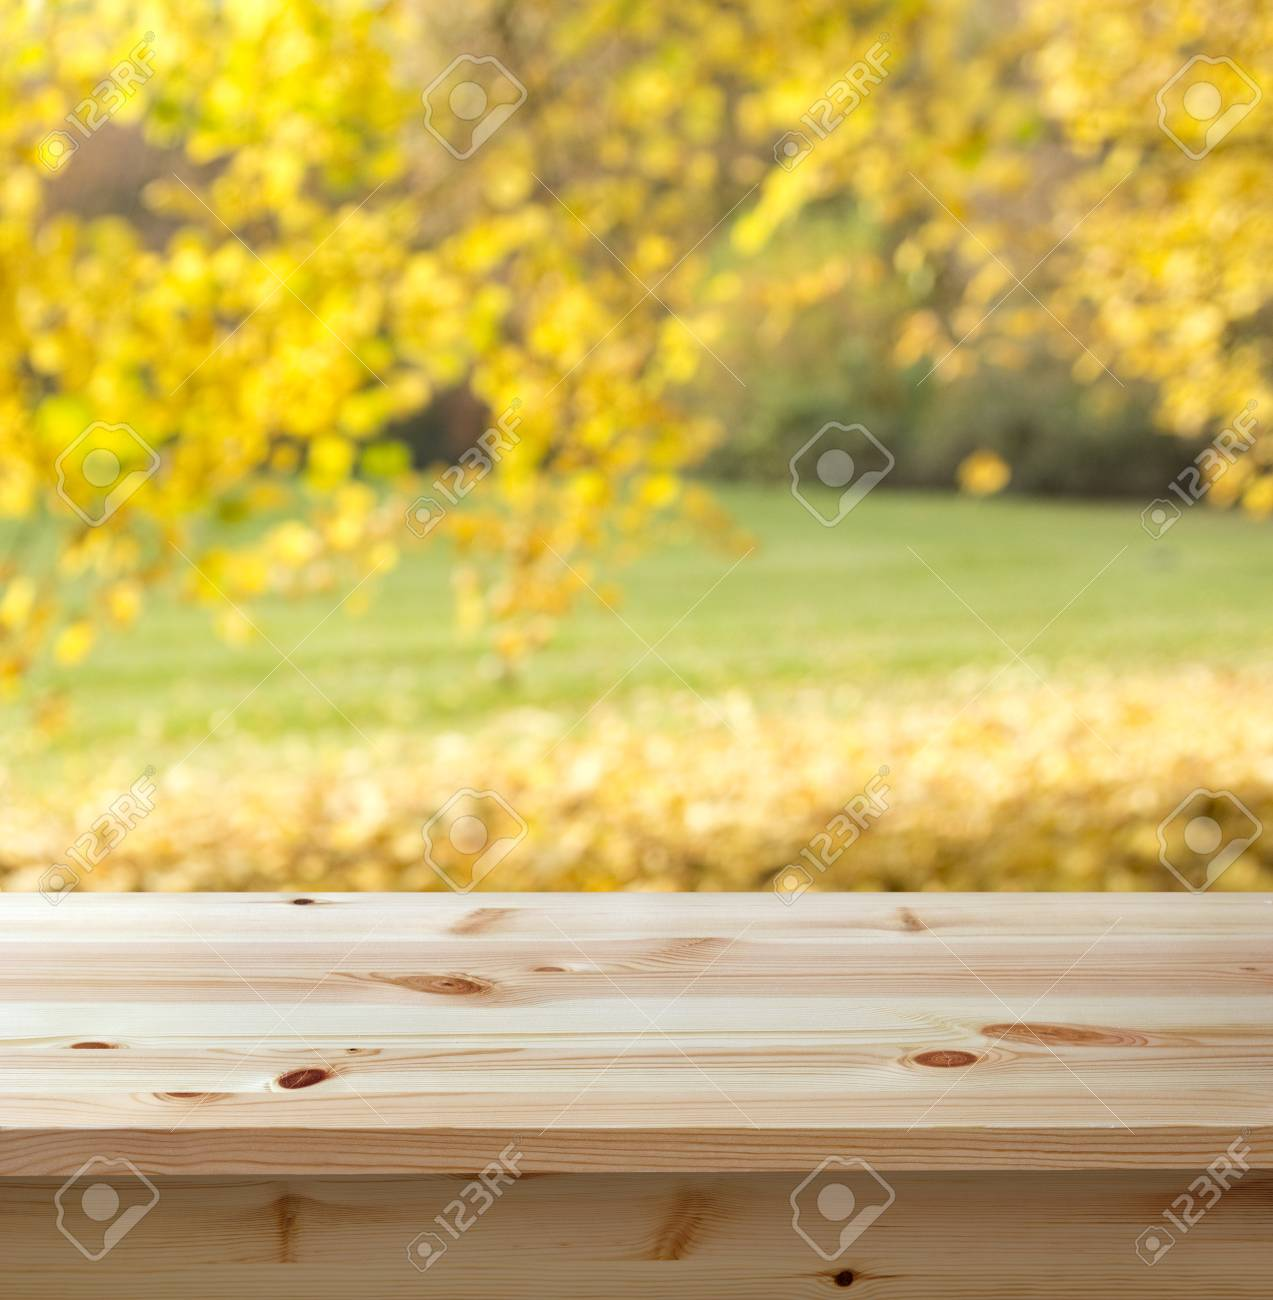 Empty wooden table against autumn background - 30527456